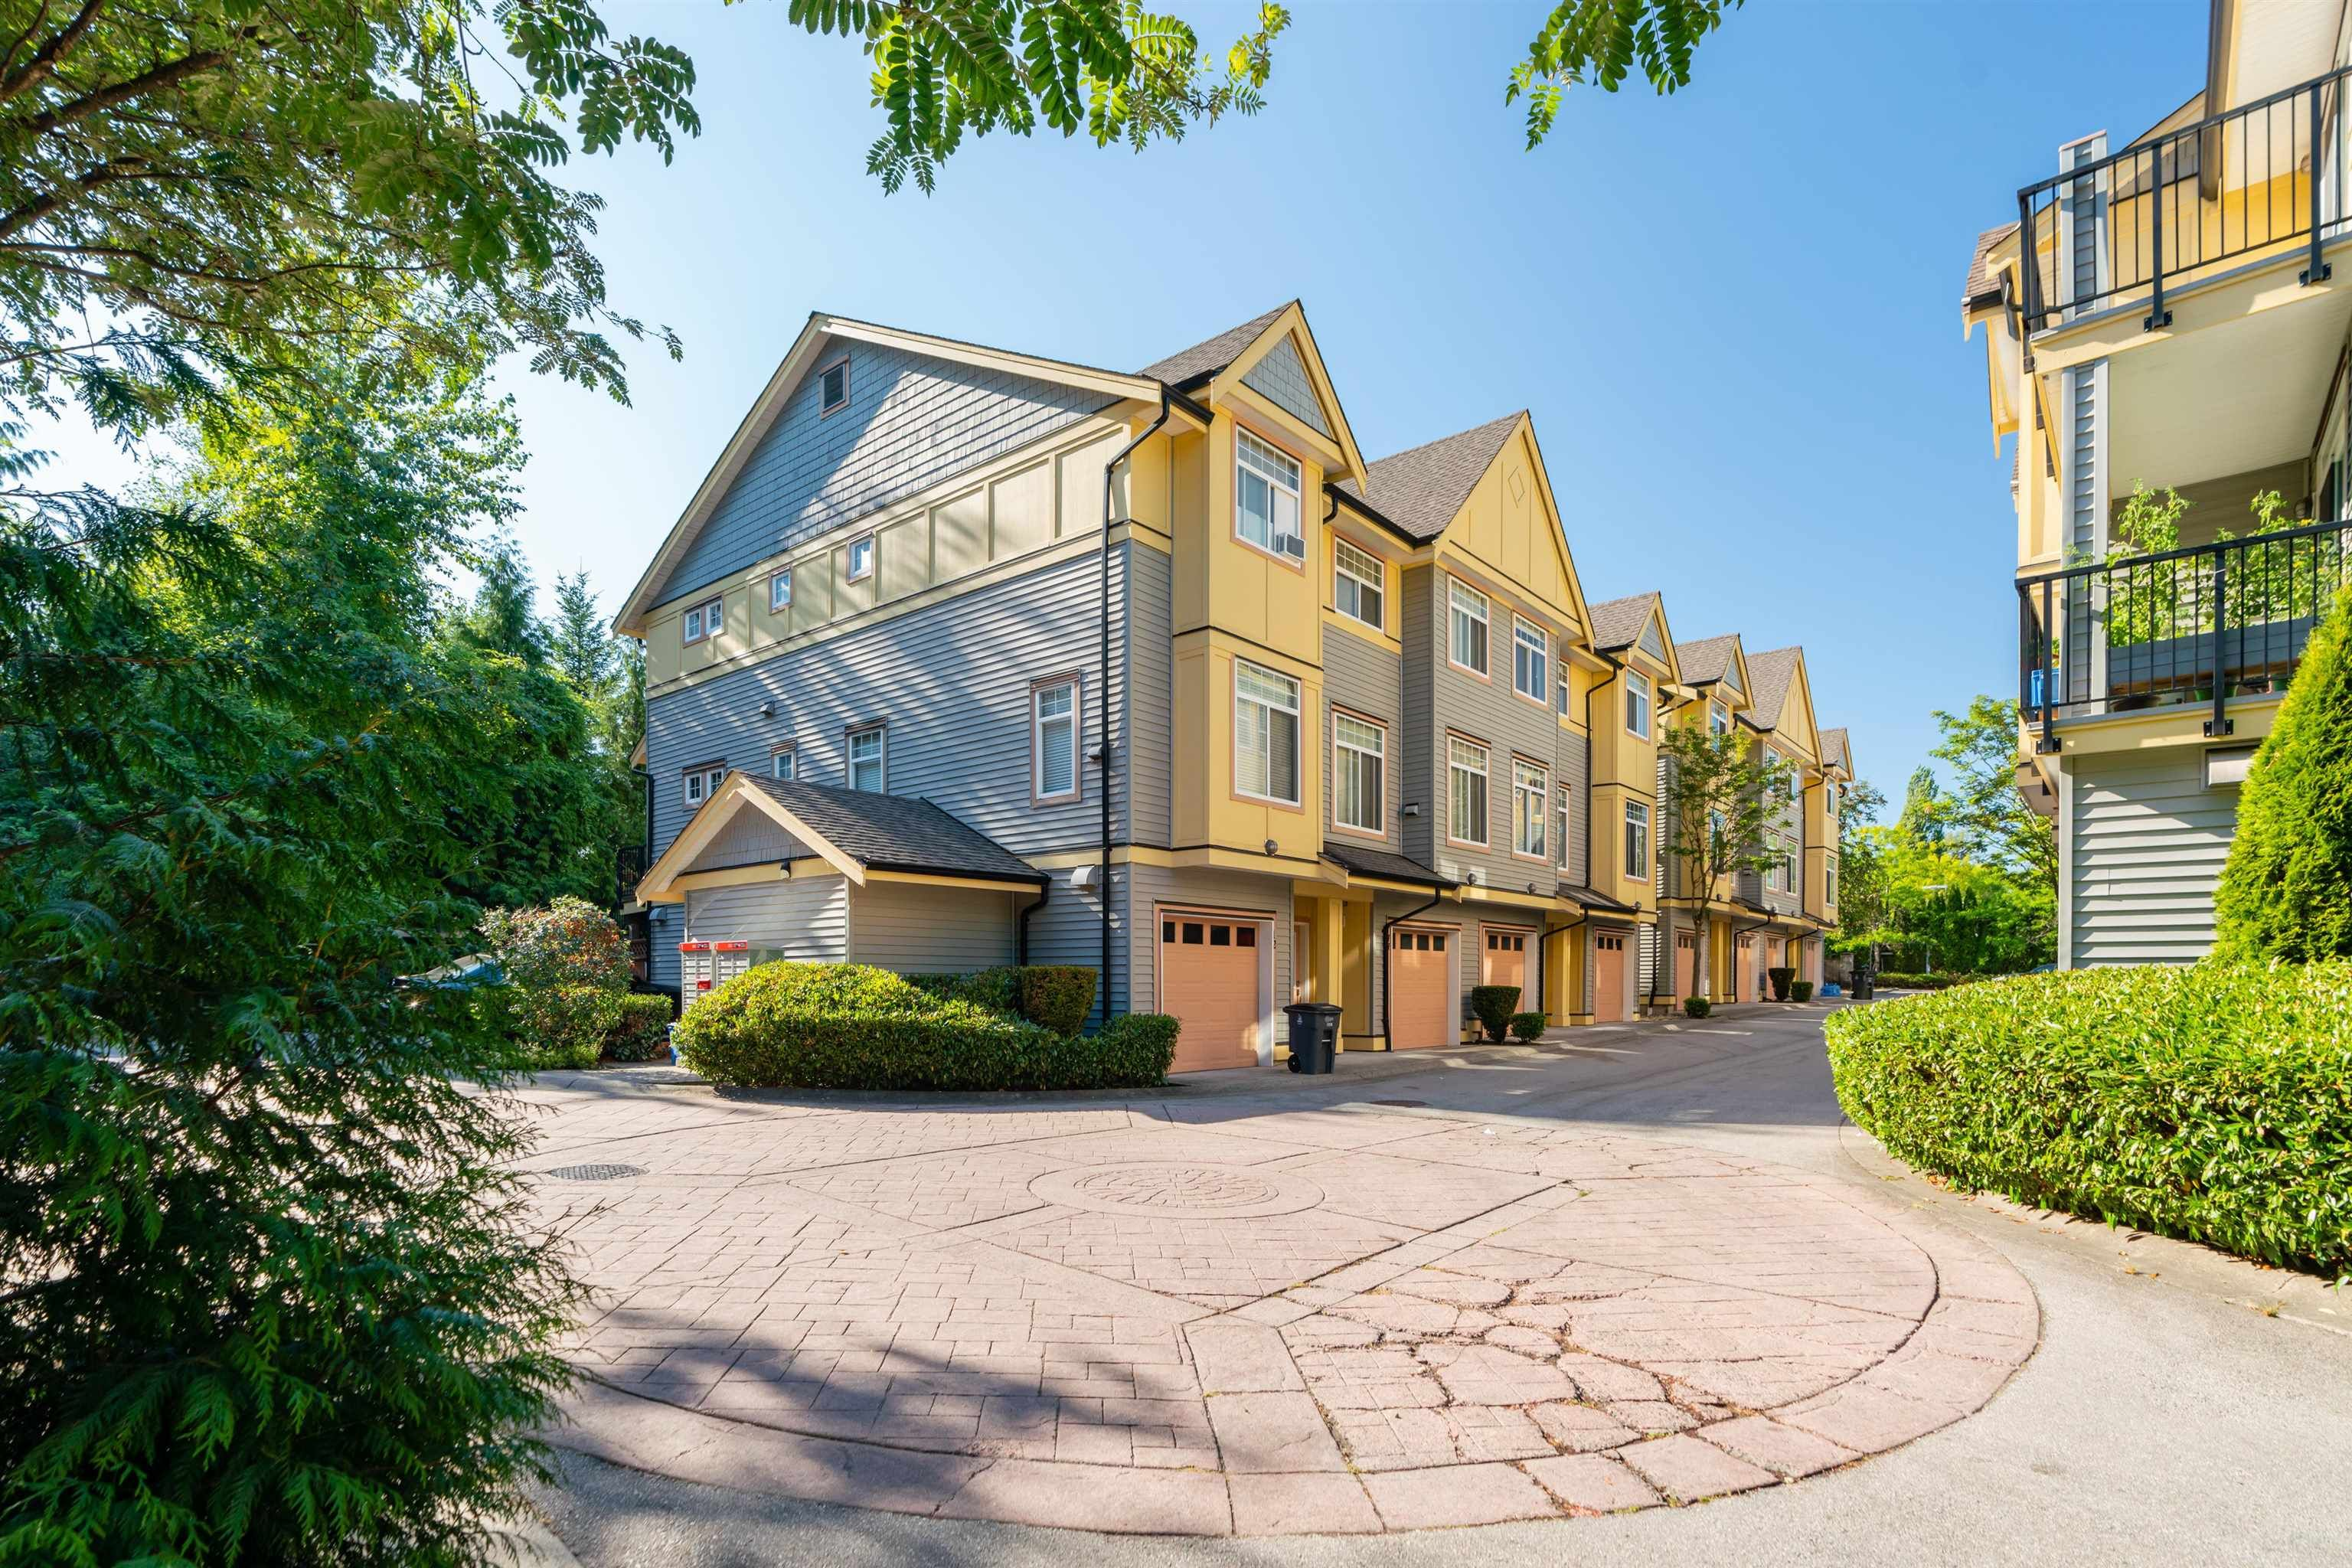 """Main Photo: 14 15518 103A Avenue in Surrey: Guildford Townhouse for sale in """"CEDAR LANE"""" (North Surrey)  : MLS®# R2612292"""